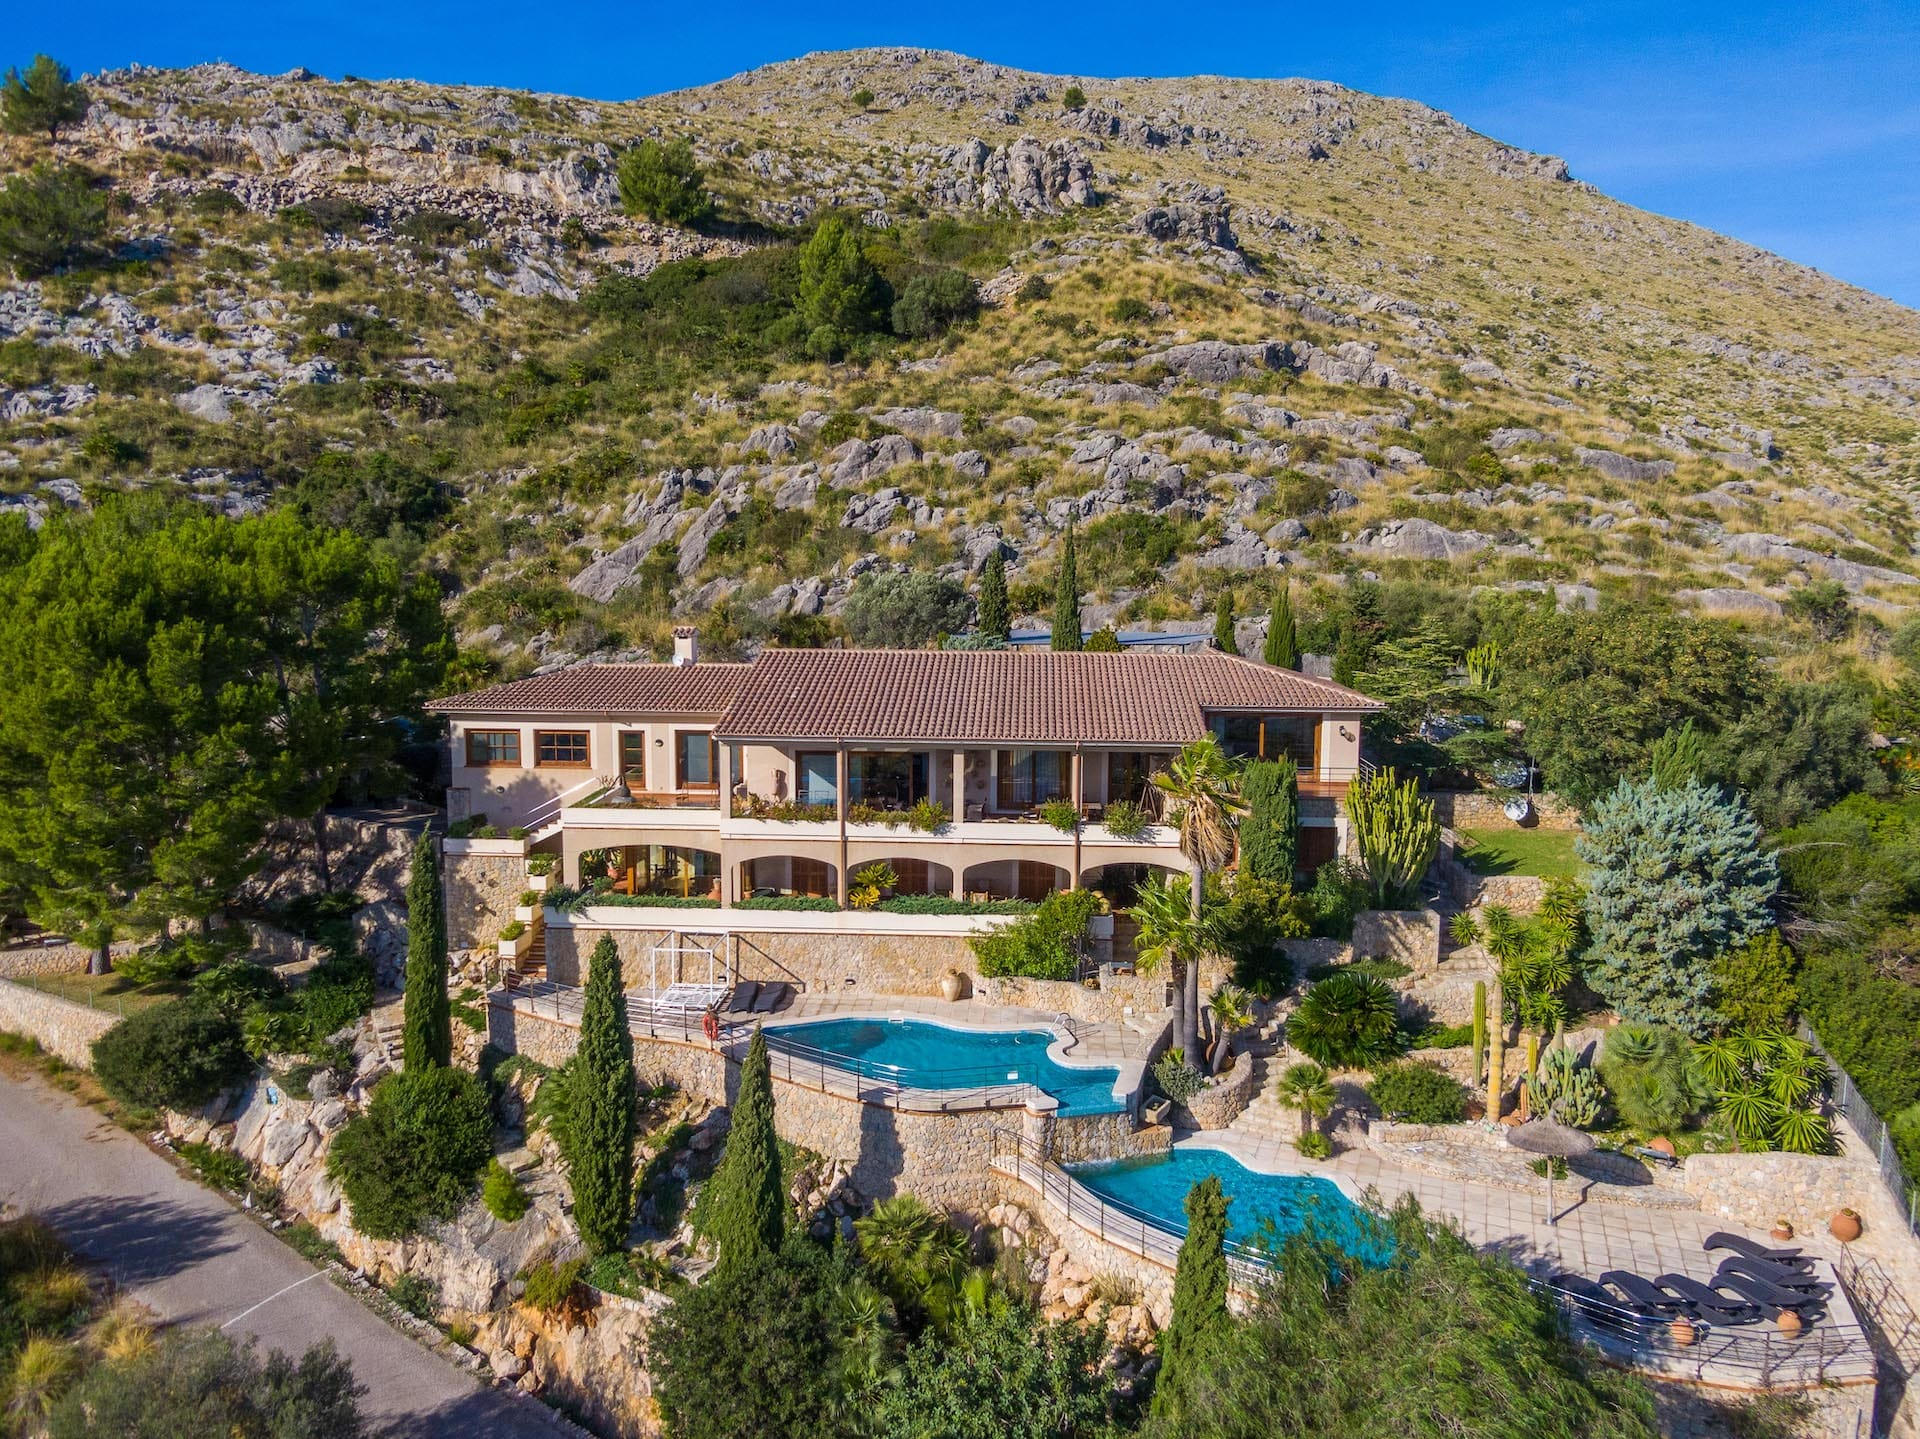 Exclusive villa set in an elevated position with panoramic views over the bay of Puerto de Pollensa.